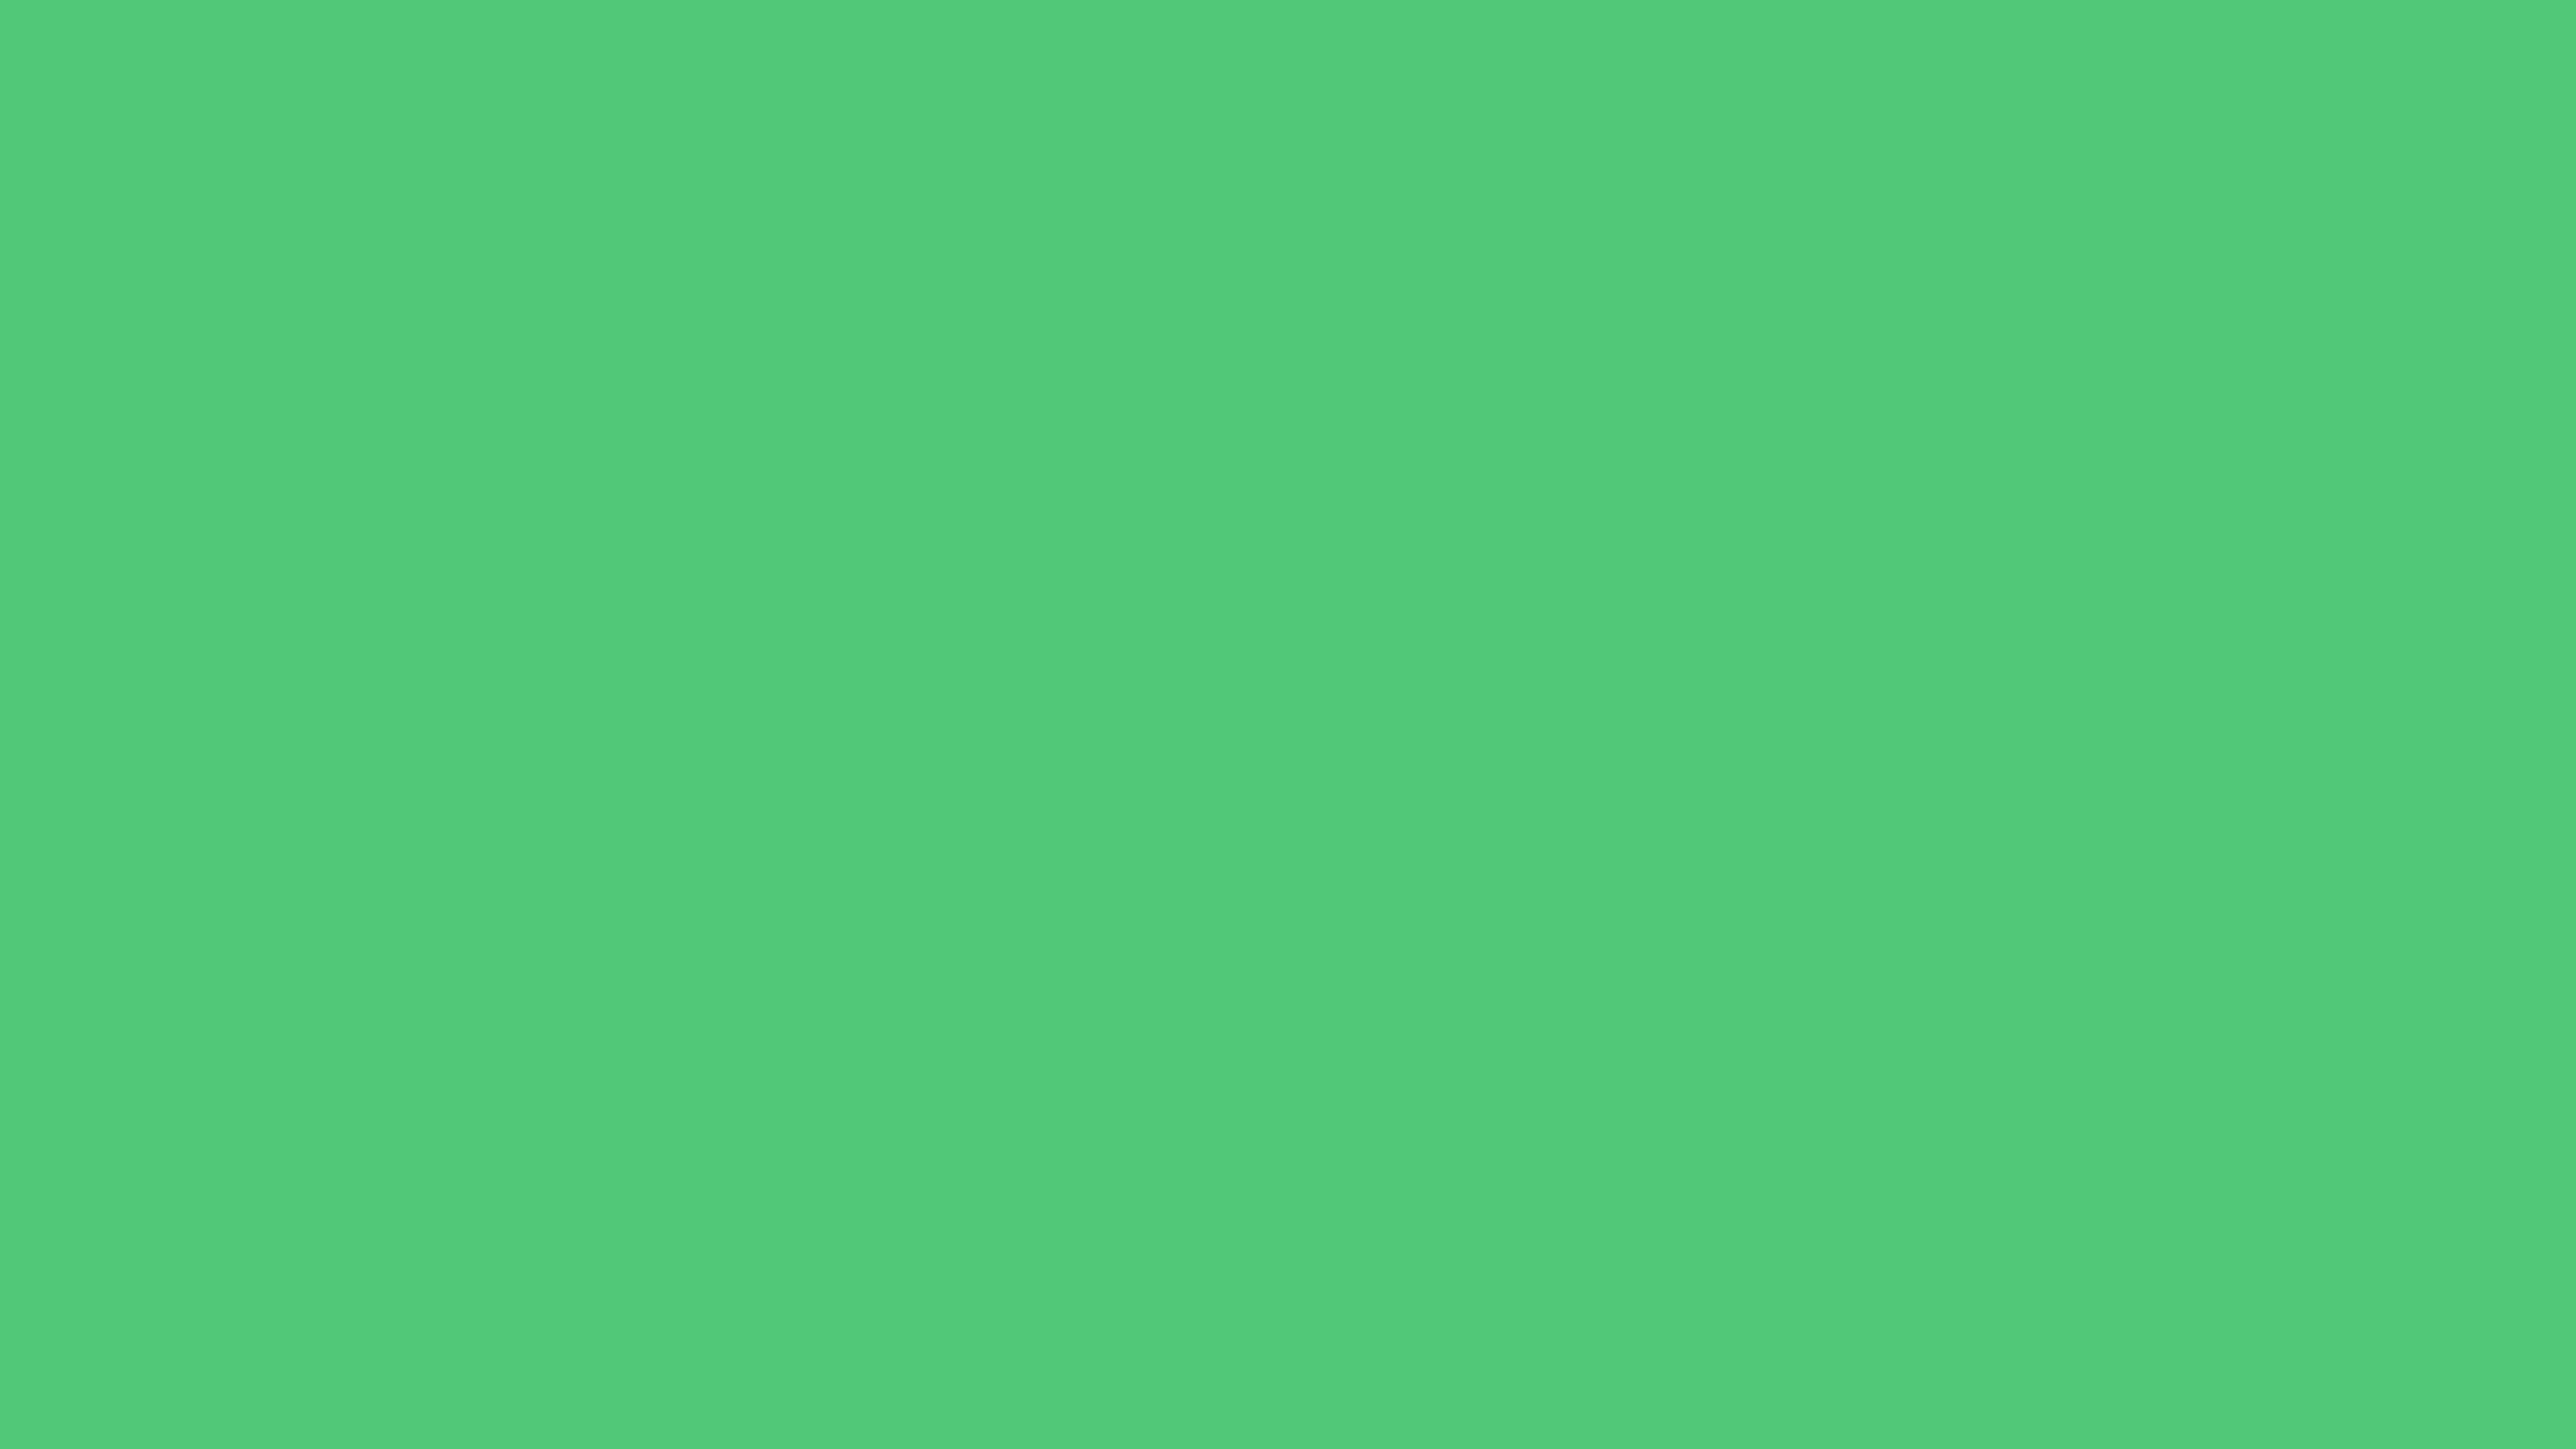 3840x2160 Emerald Solid Color Background